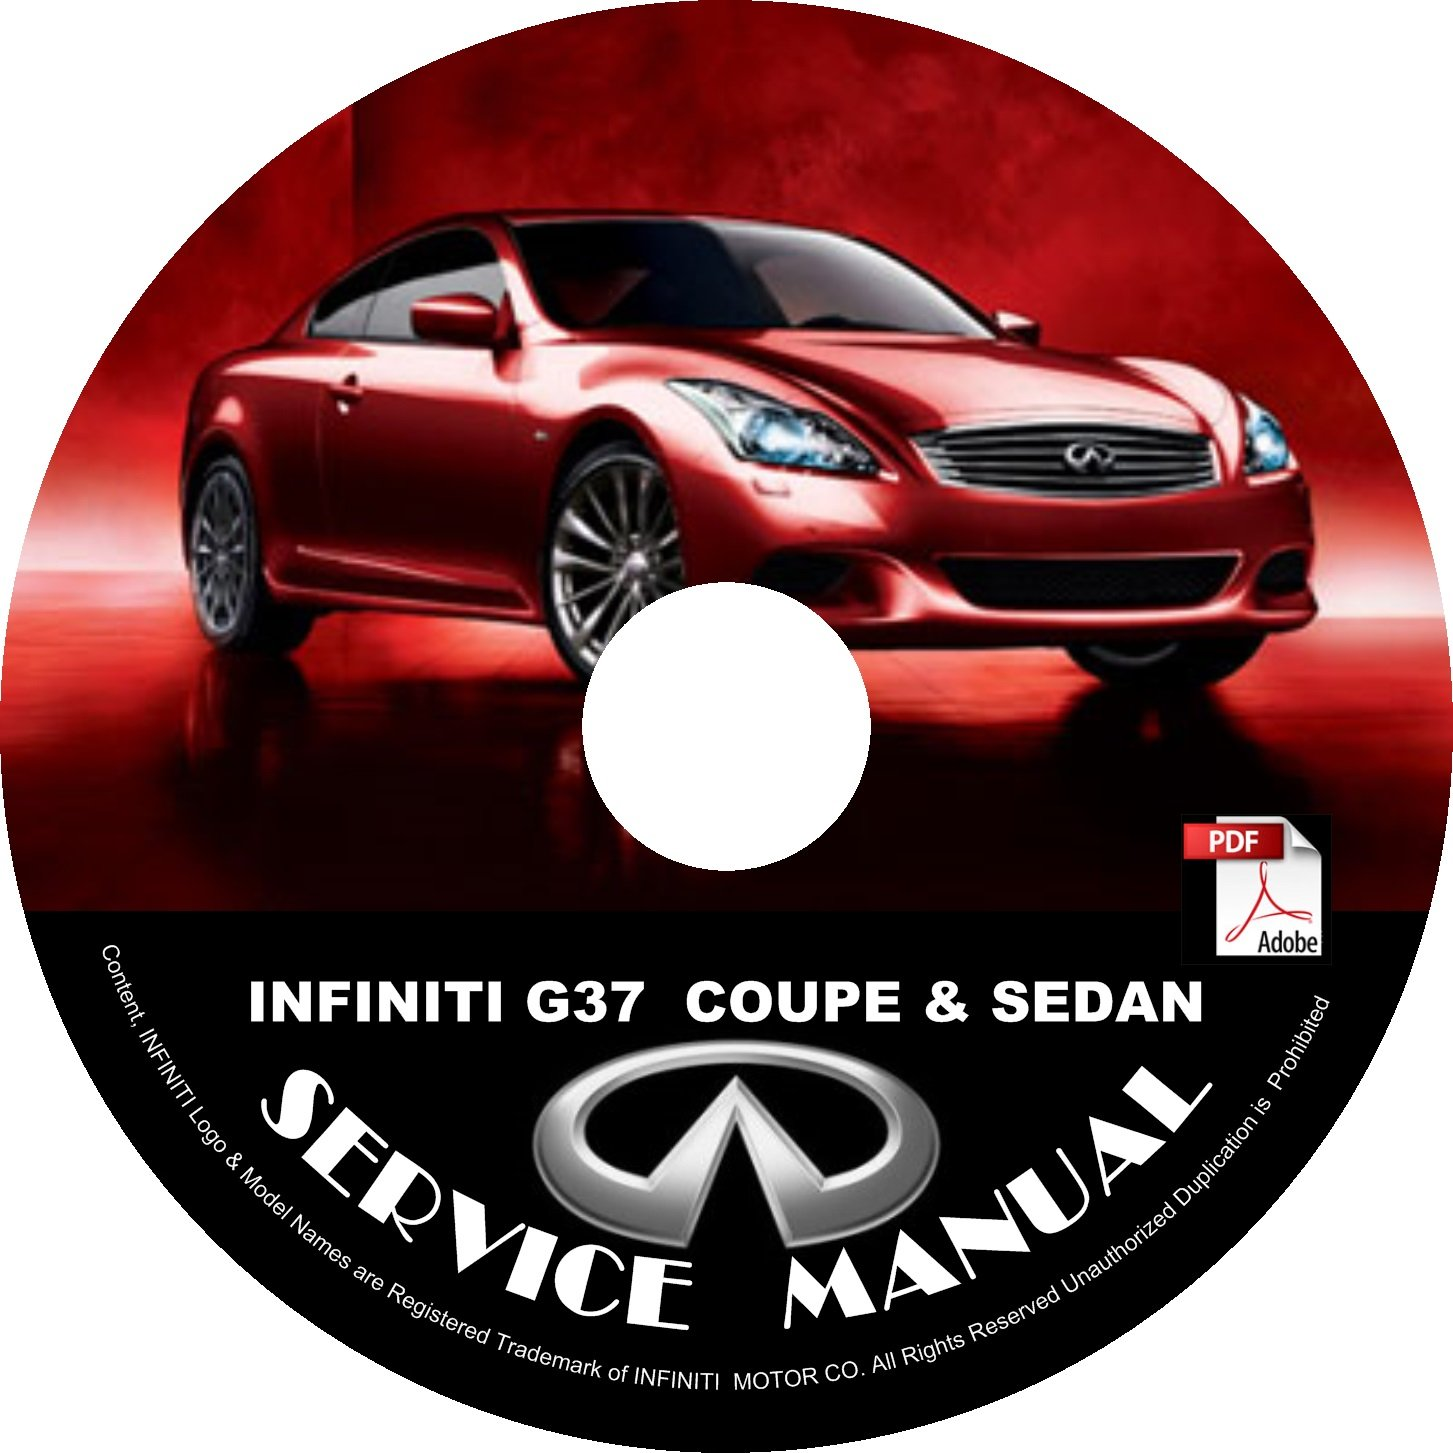 2008 Infiniti G37 Coupe & Sedan Service Repair Shop Manual on CD